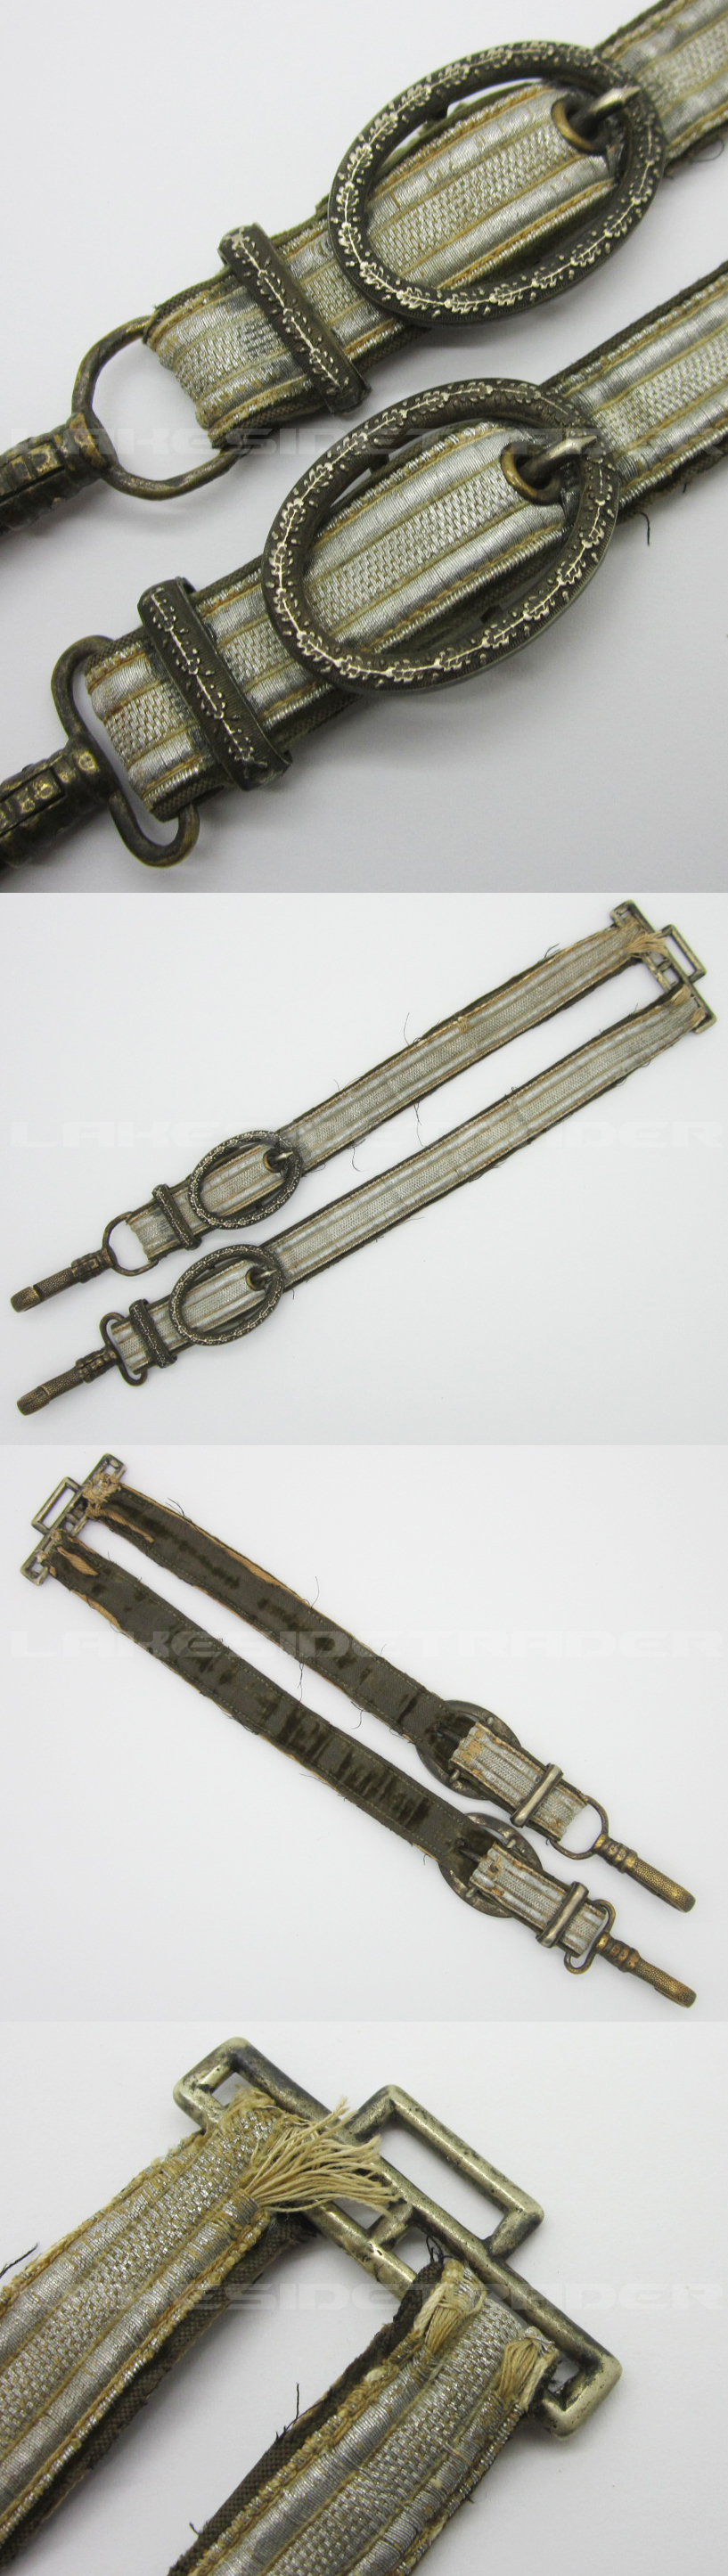 Early Army Hangers